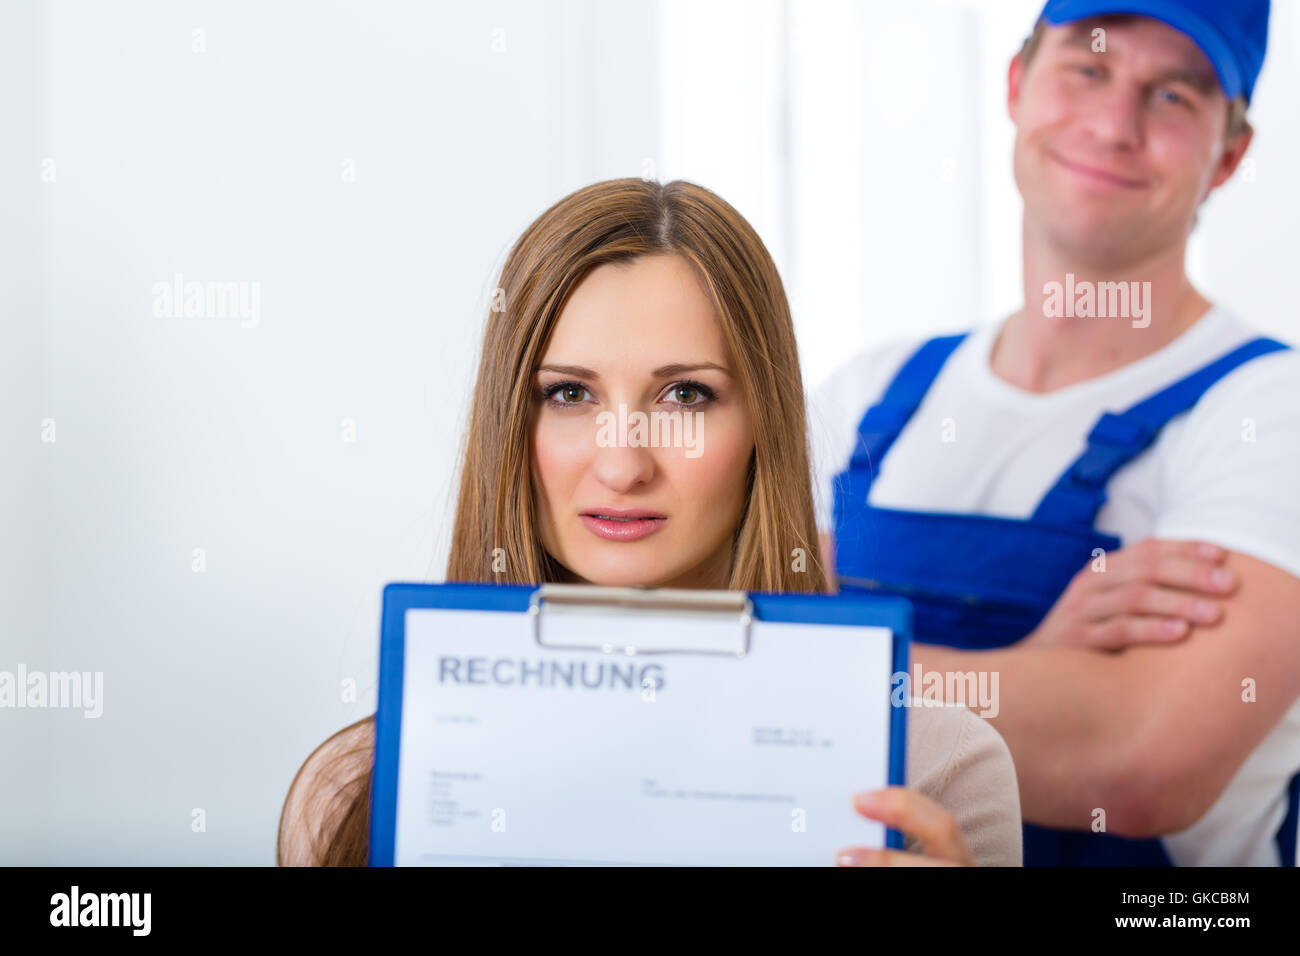 expensive competence - Stock Image